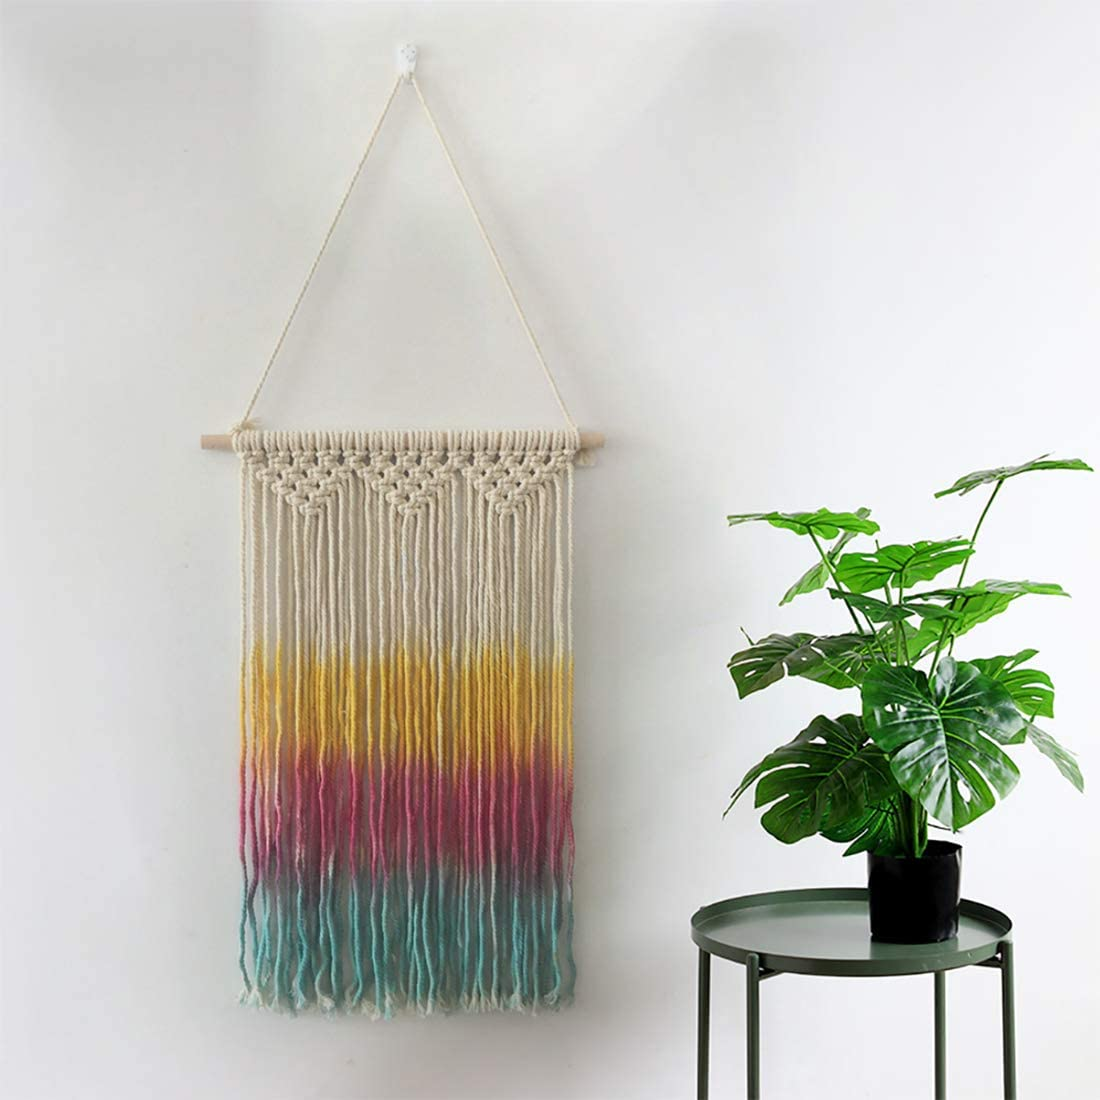 IHOMEIS Colorful Macrame Wall Hanging Woven Rainbow Colorful Handmade Woven Tapestry Boho Bohemian Home Décor Craftmanship Yellow, Pink and Sky Blue